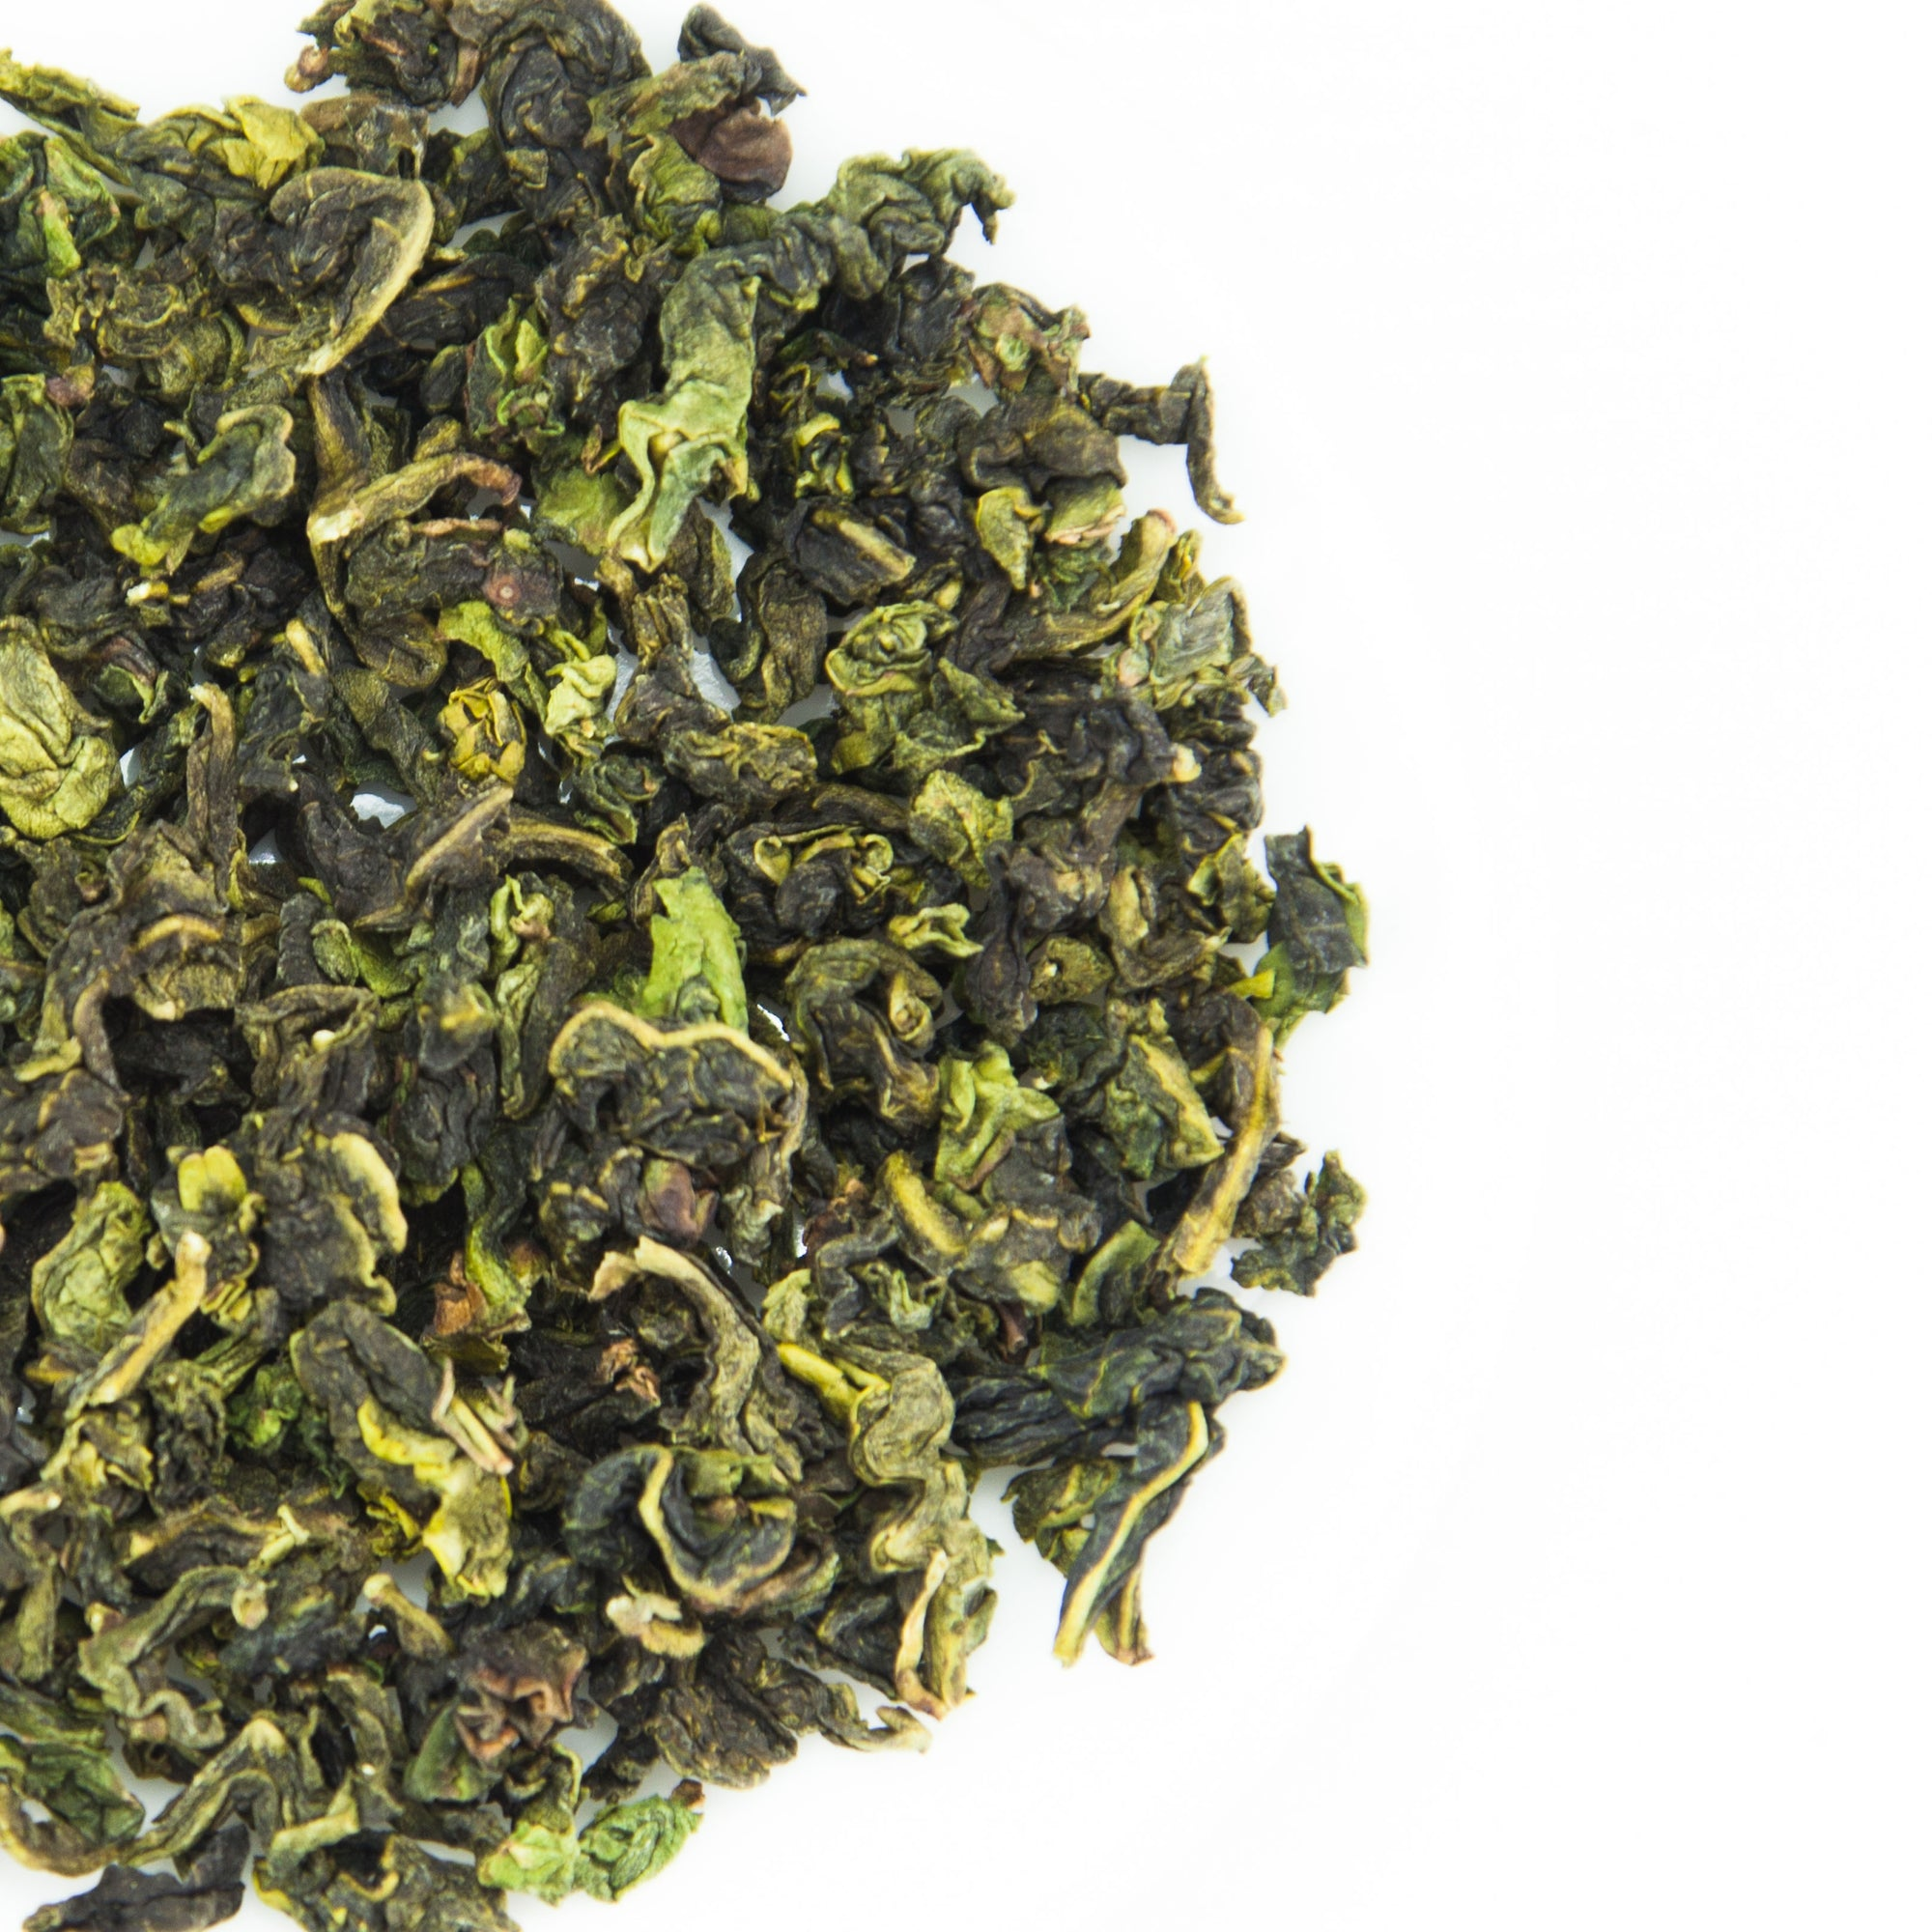 Tie Guan Yin (Iron Goddess of Mercy) - Selected Grade